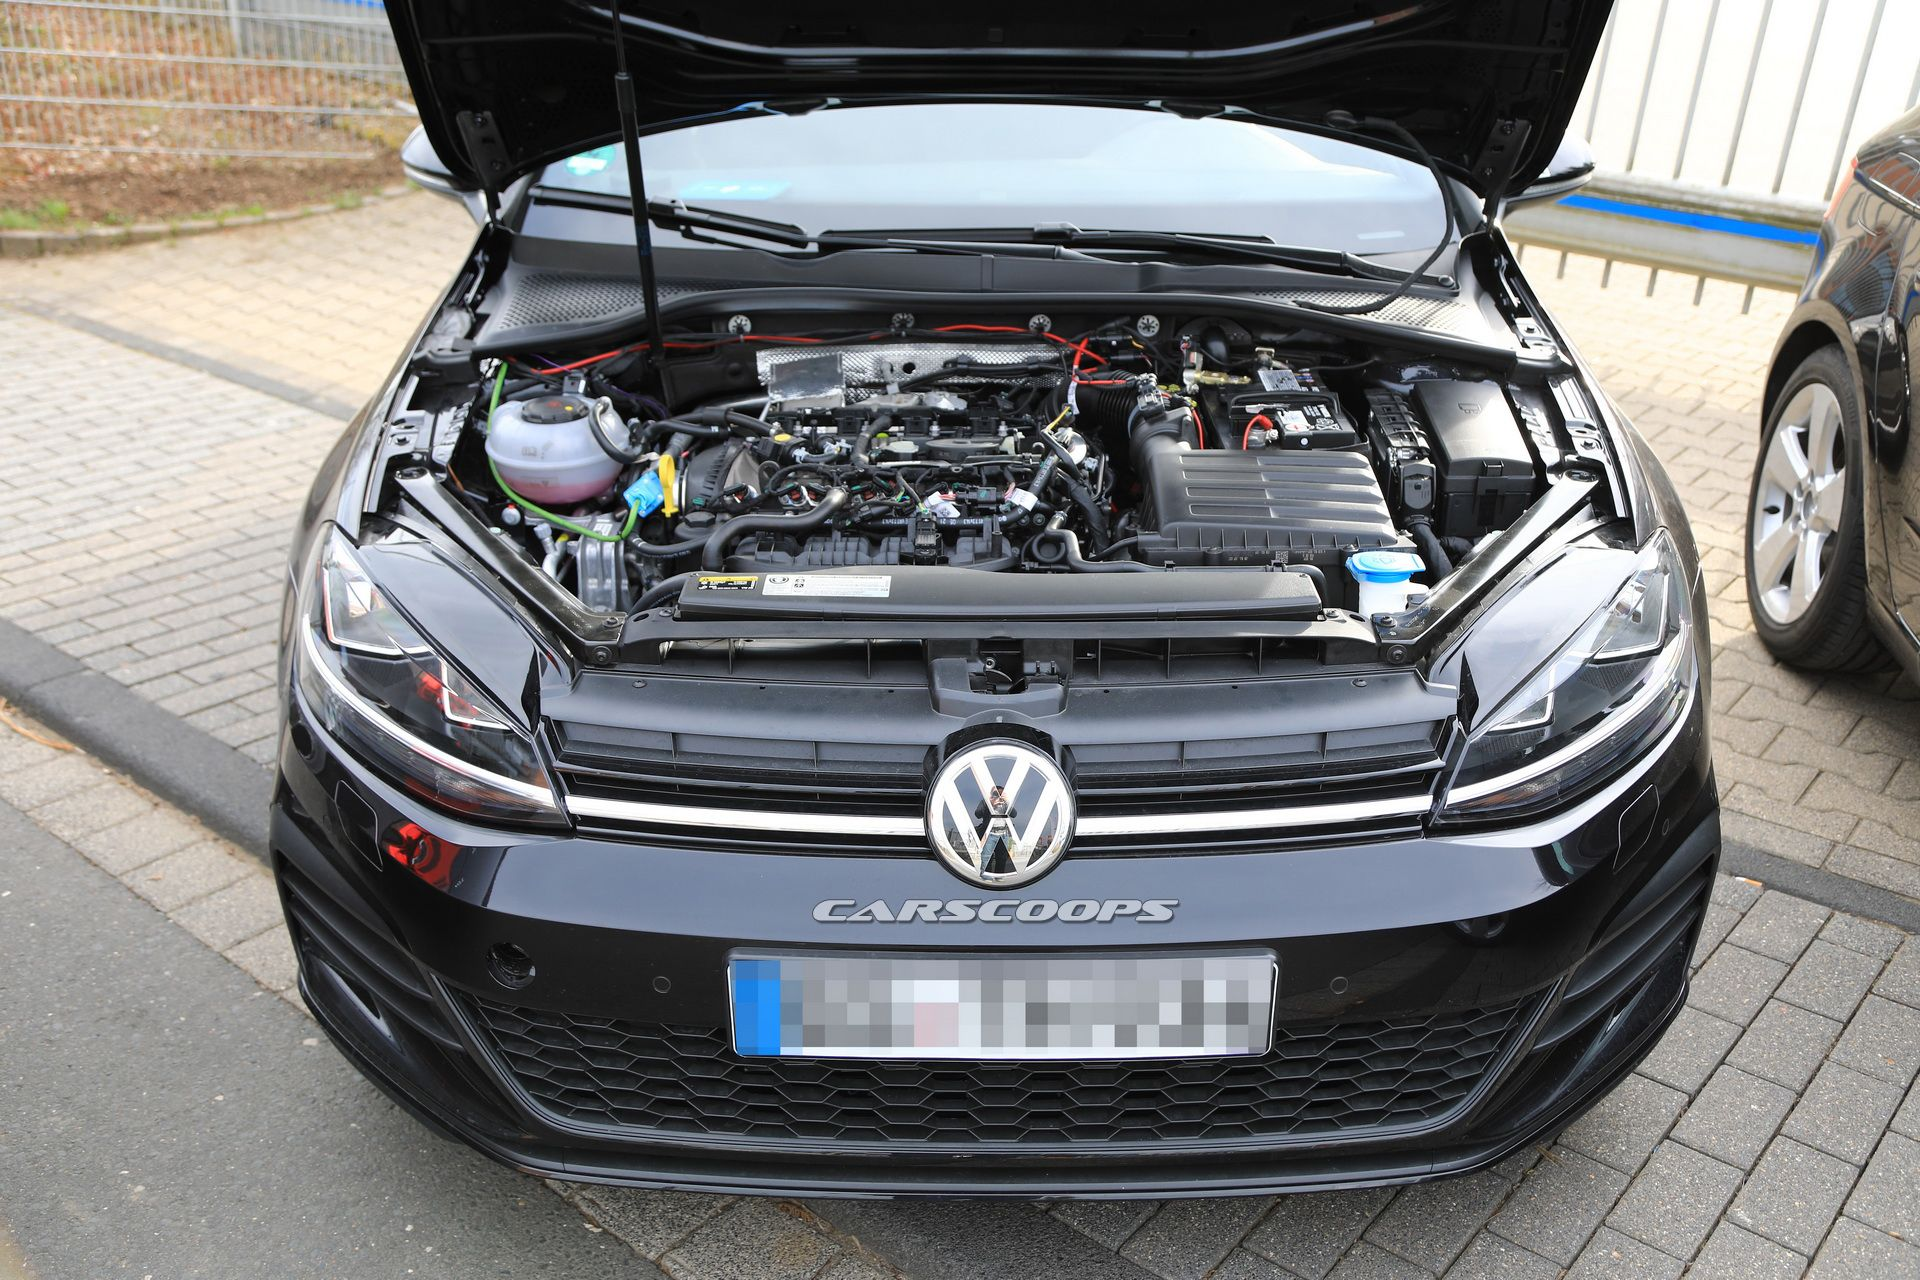 vw-golf-8-test-mule-spy-13.jpg